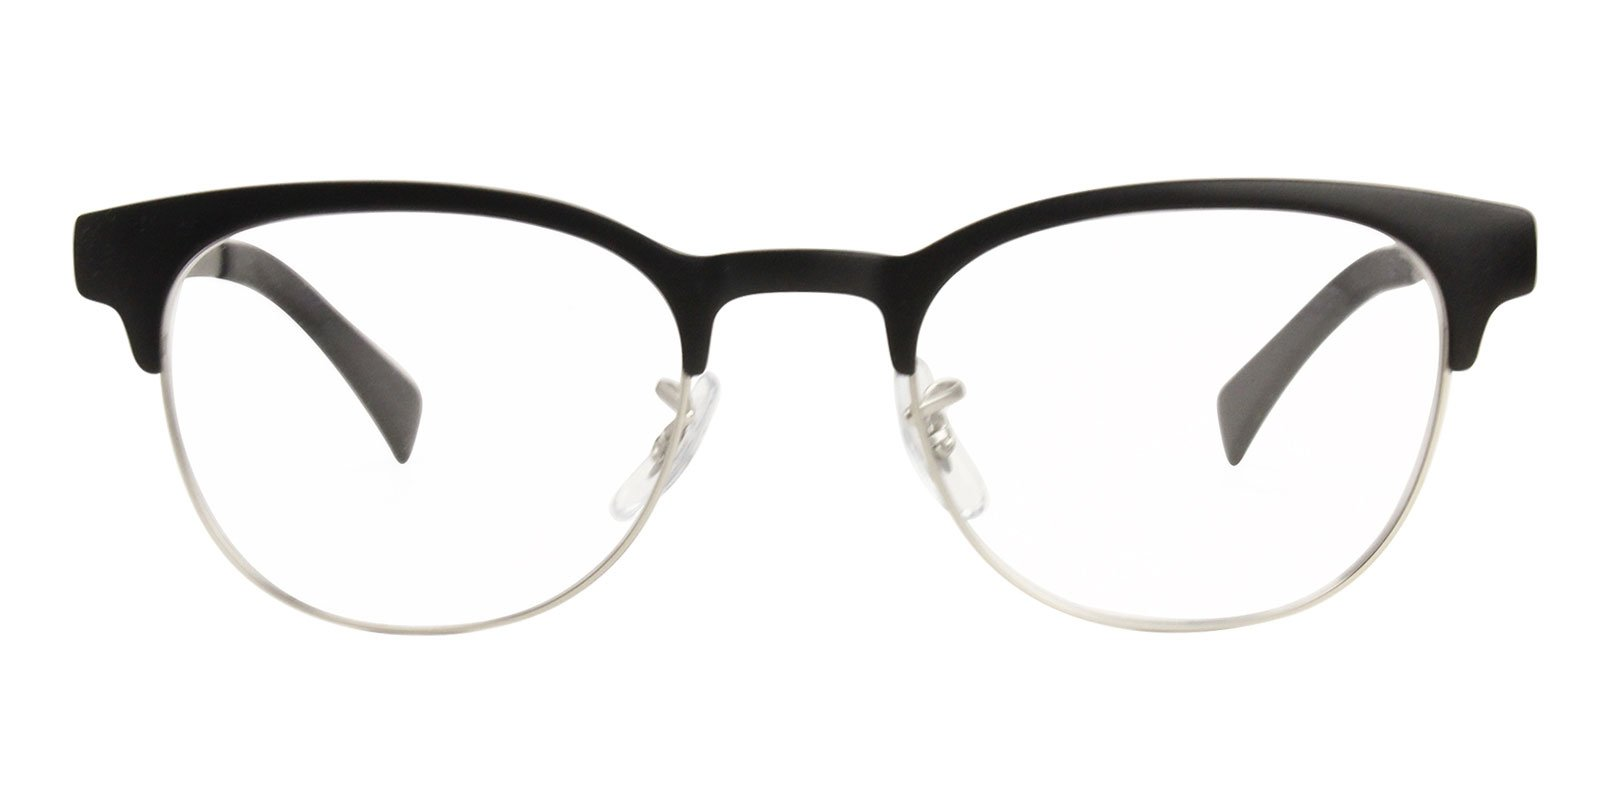 Ray Ban Rx - RX6317 Black Oval Unisex Eyeglasses - 49mm-Eyeglasses-Designer Eyes